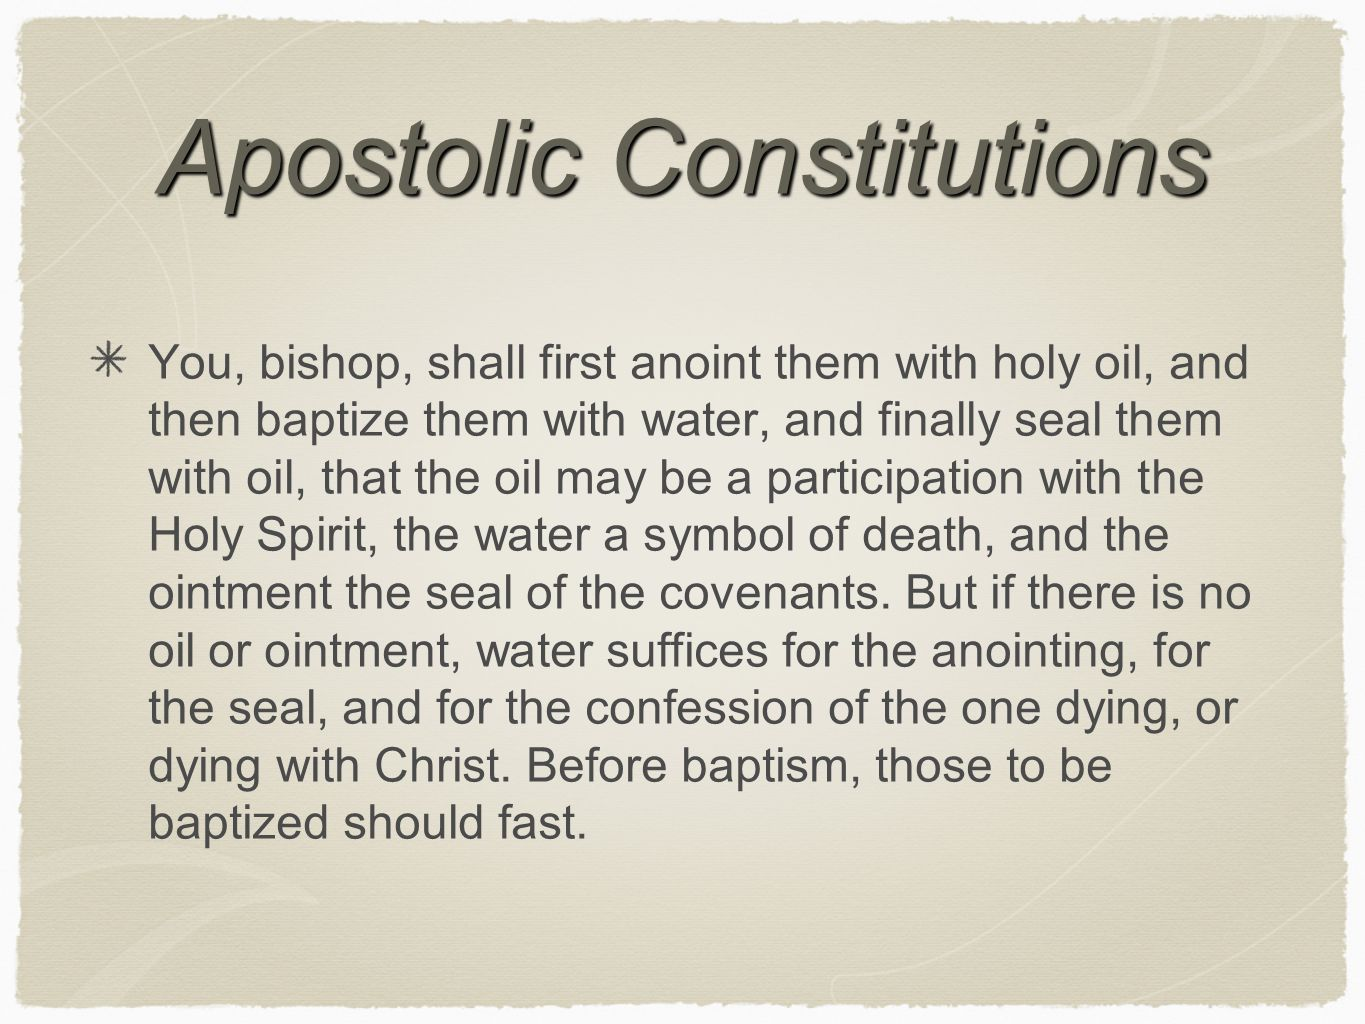 Apostolic Constitutions You, bishop, shall first anoint them with holy oil, and then baptize them with water, and finally seal them with oil, that the